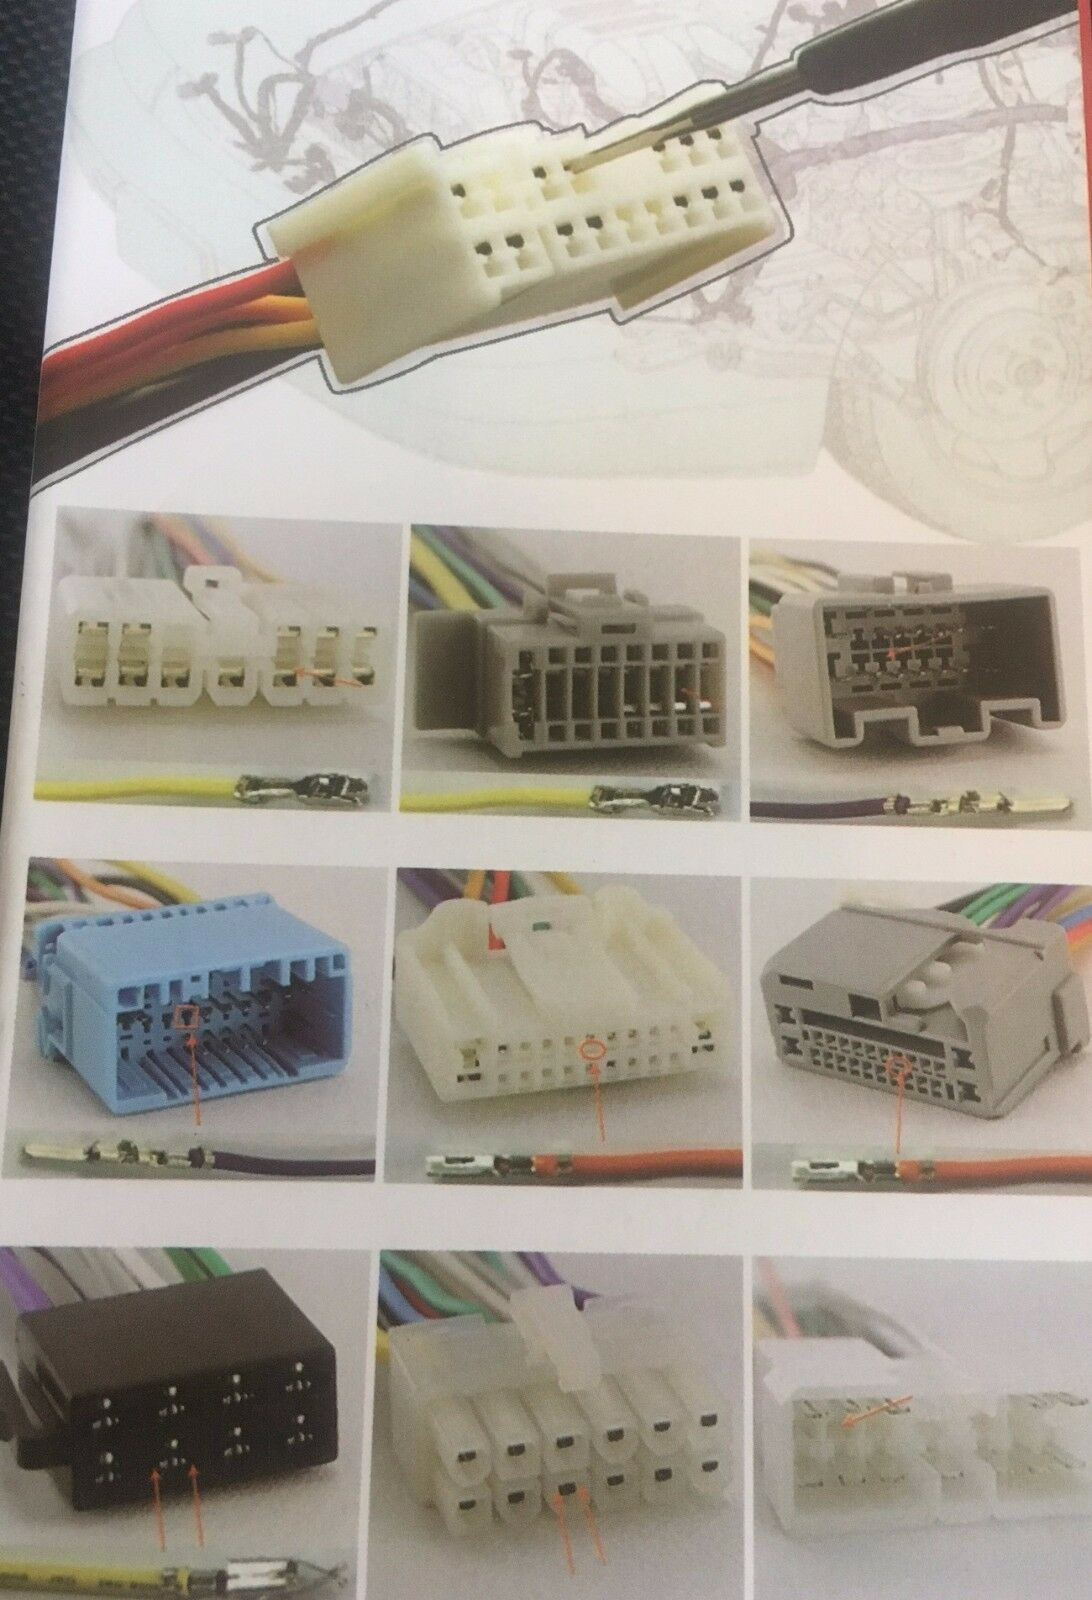 Wiring Harness Pin Removal Tool Electrical Diagrams Auto Set 5 Boxed Wire Connector Extractor Plug